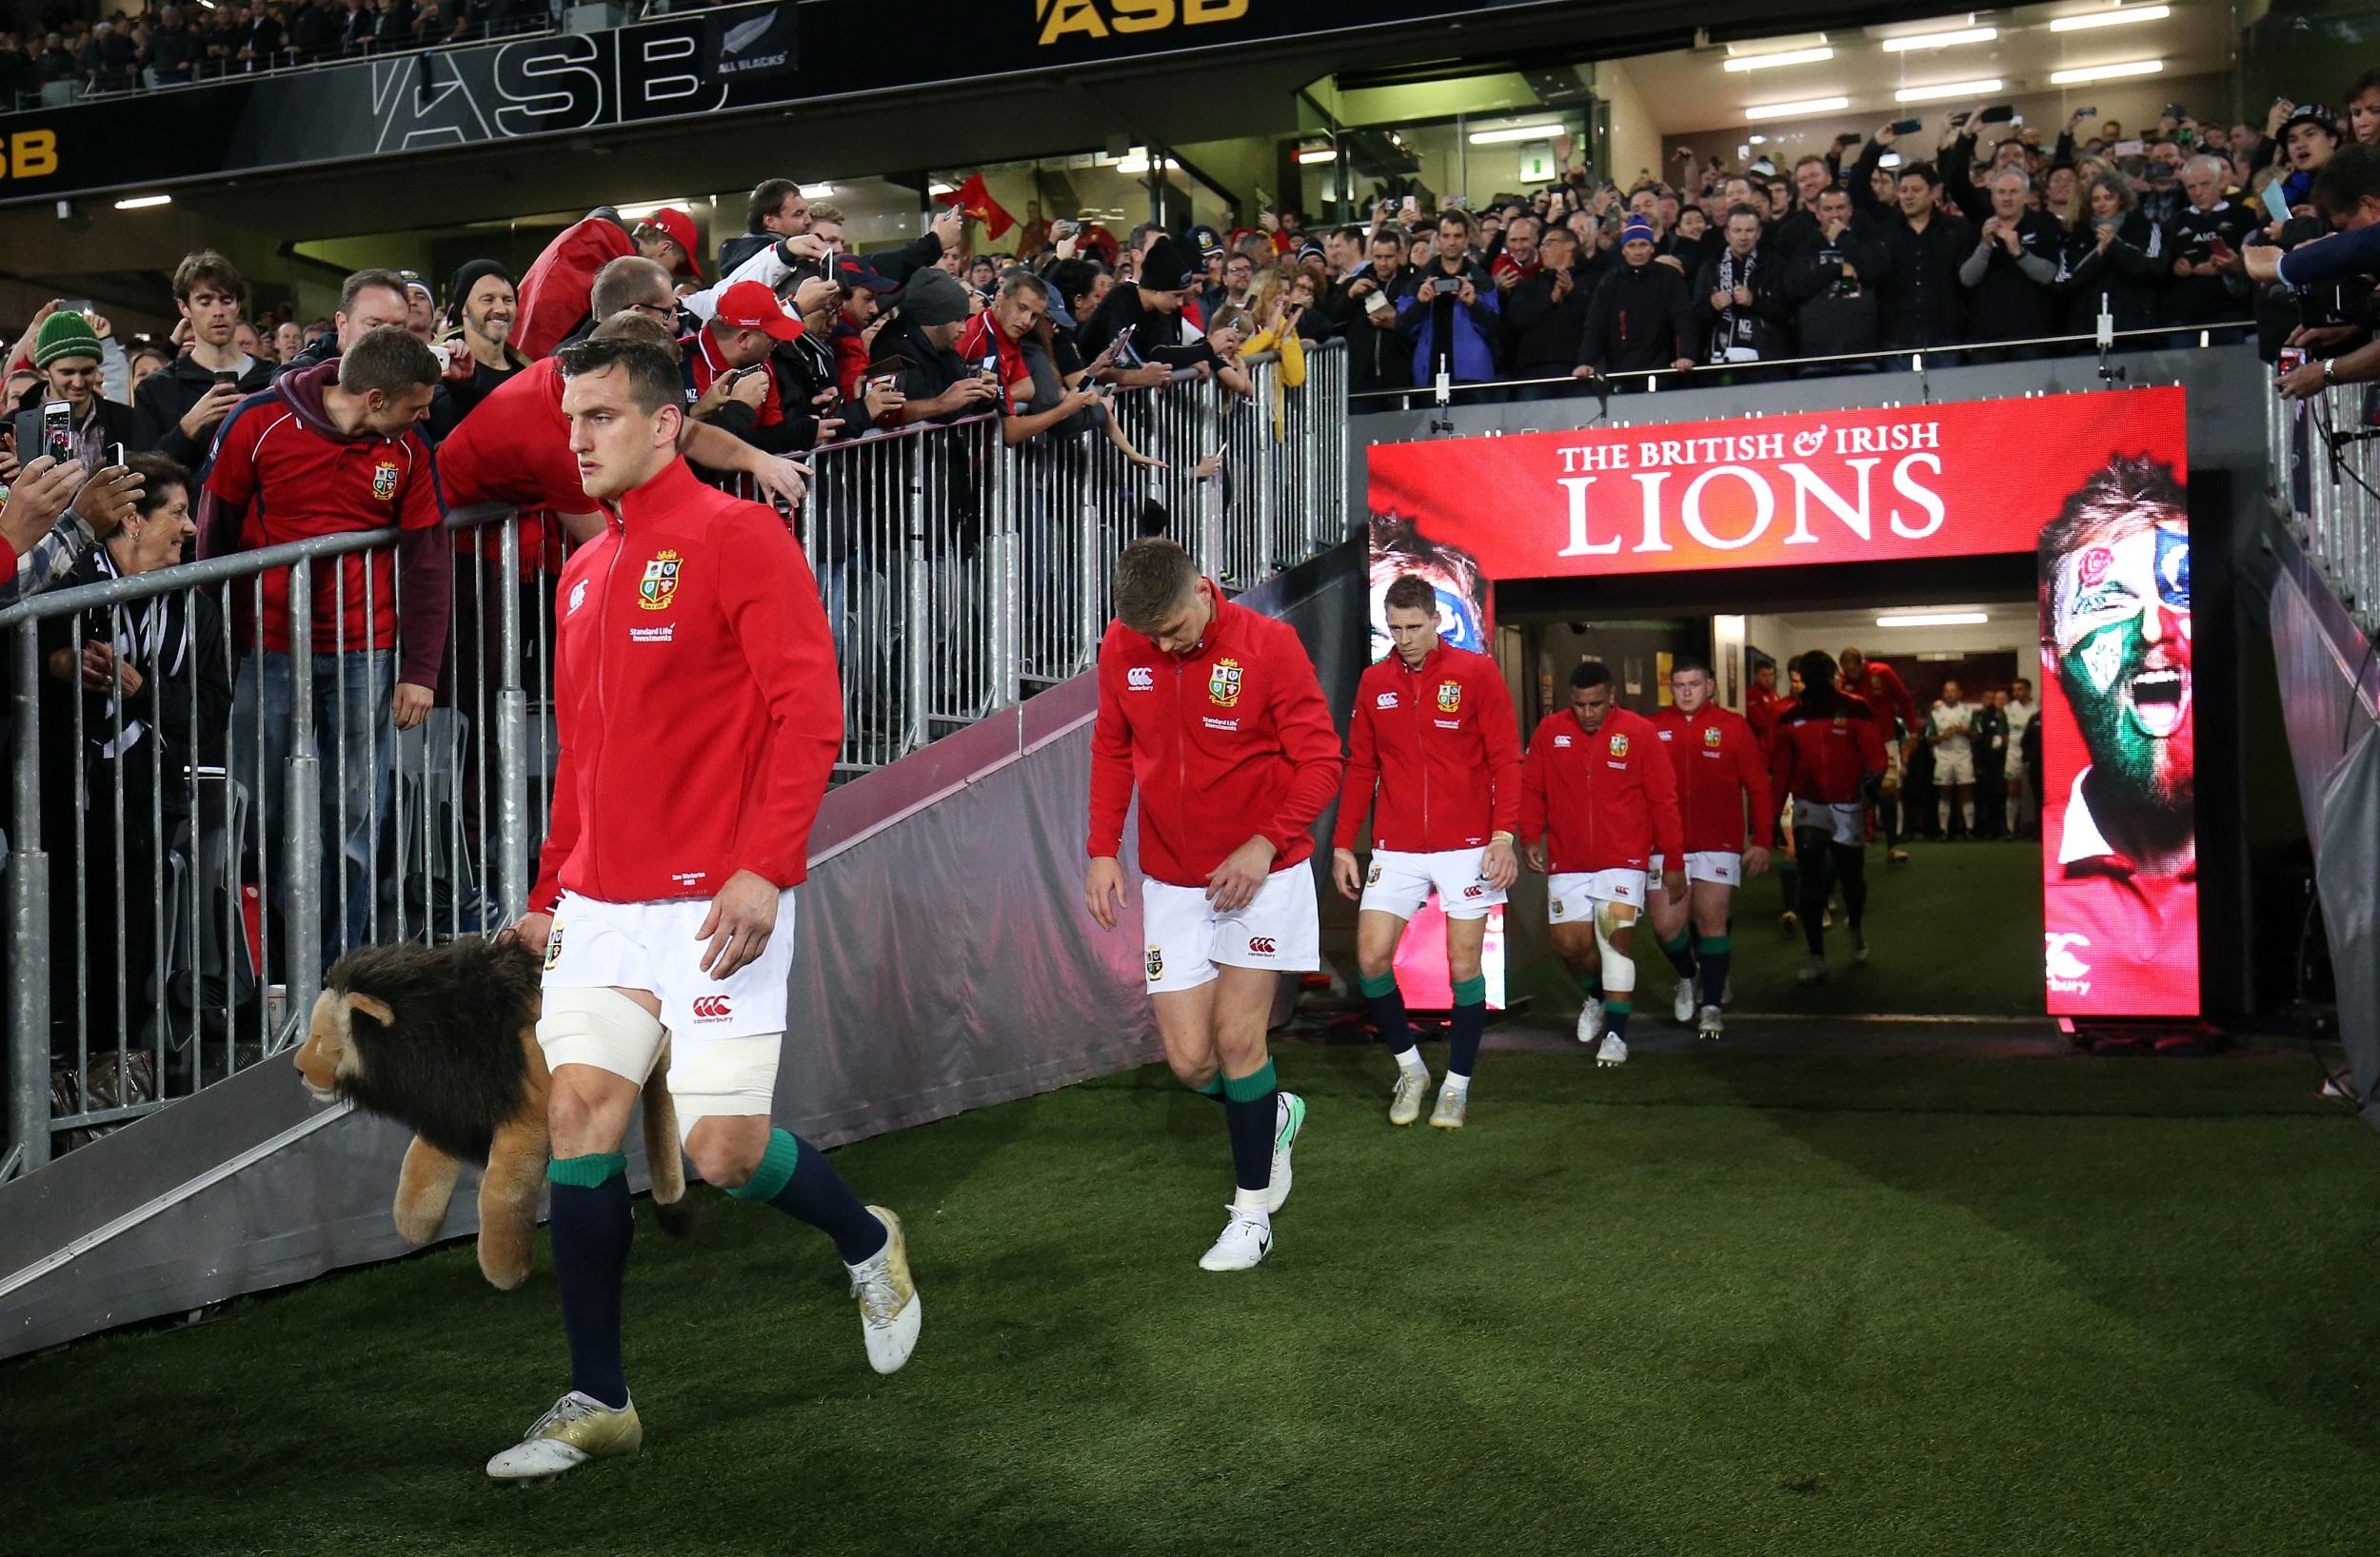 File: The eagerly awaited visit by the Lions is scheduled for July and August 2021.